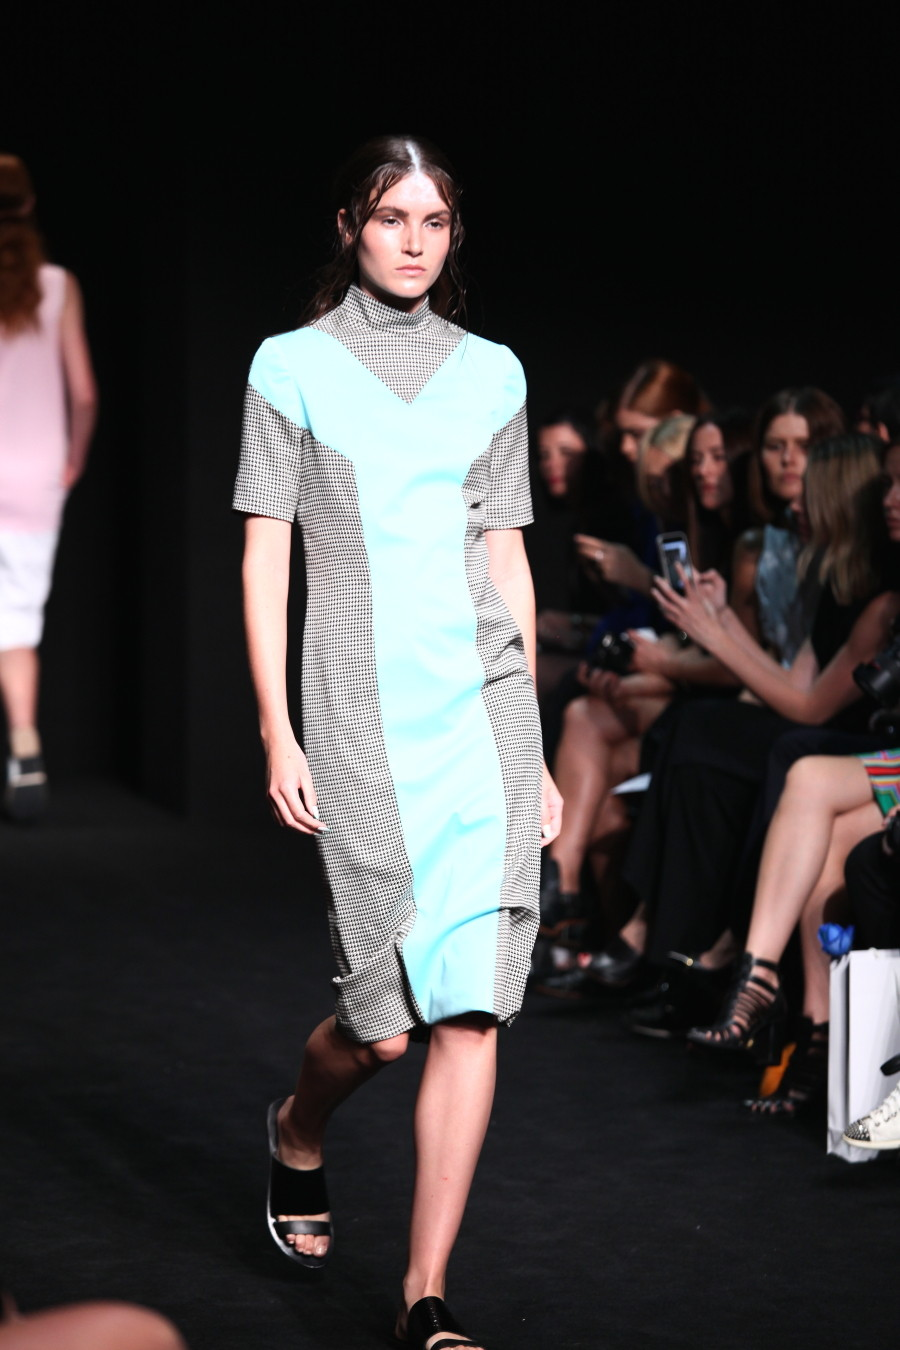 leroy nguyen spring summer collection MBFWA fashion week australia